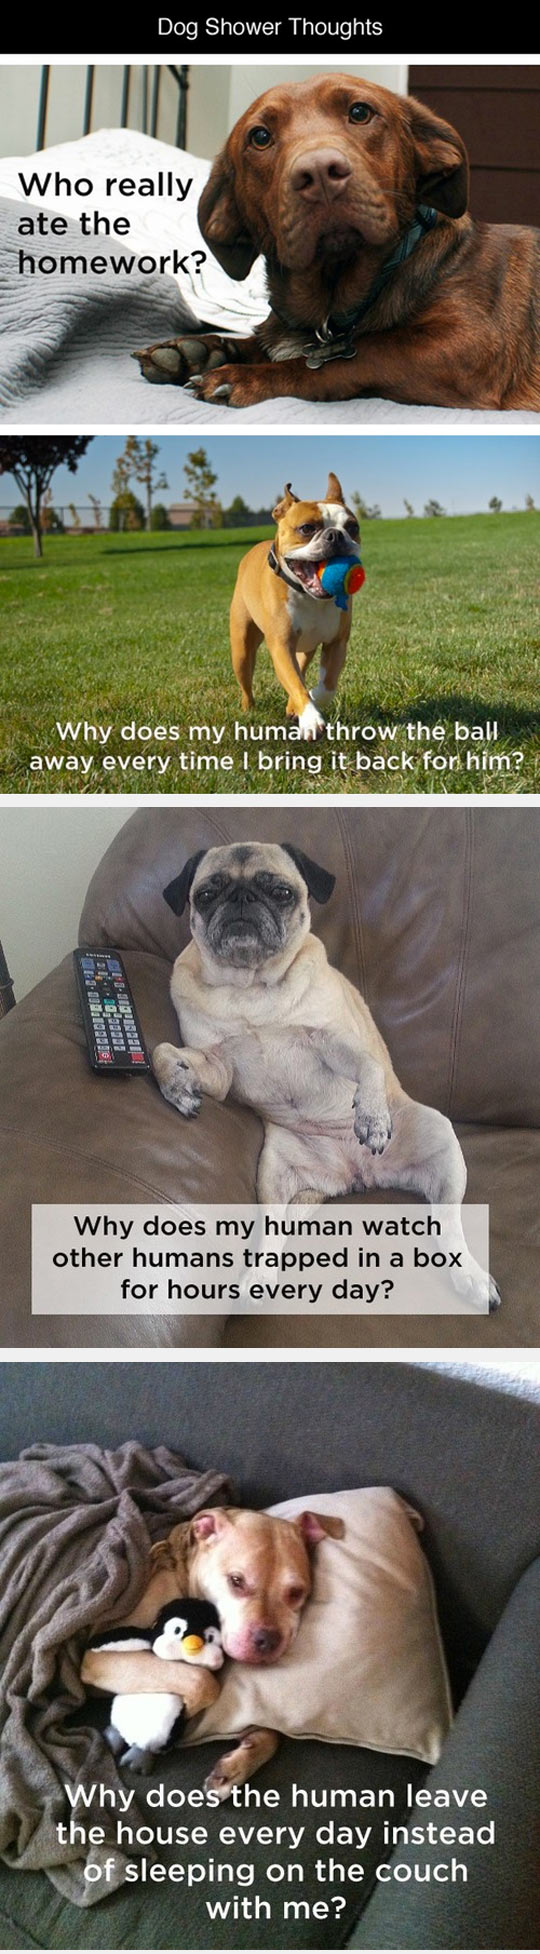 funny-dog-shower-thoughts-homework-ball